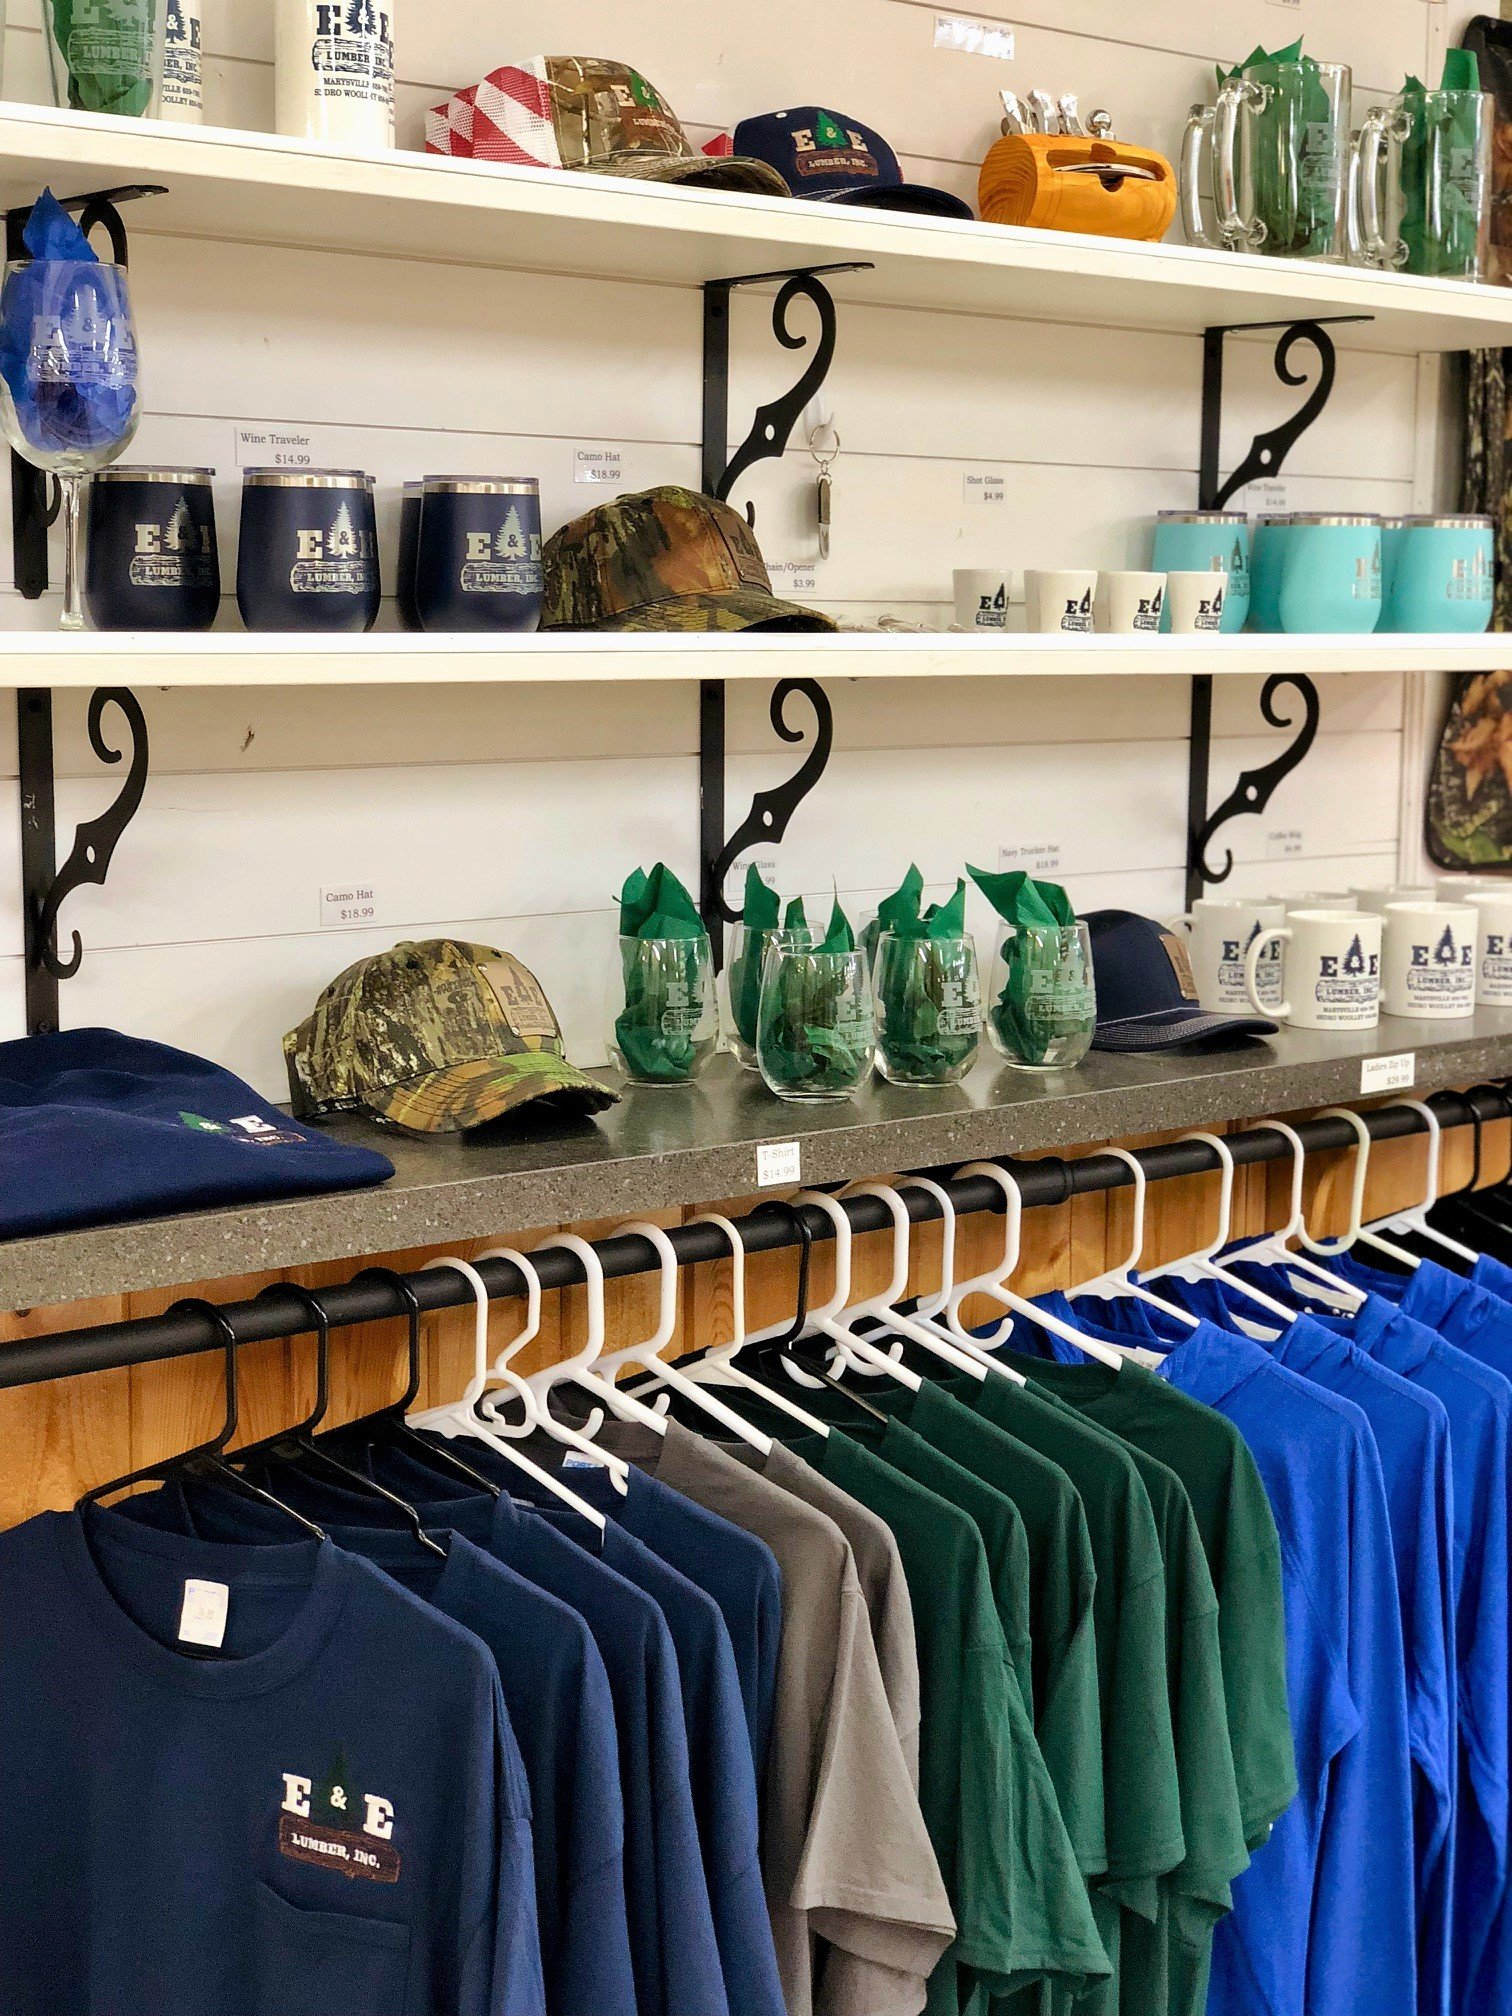 Group of accessories on shelves and hanging shirts